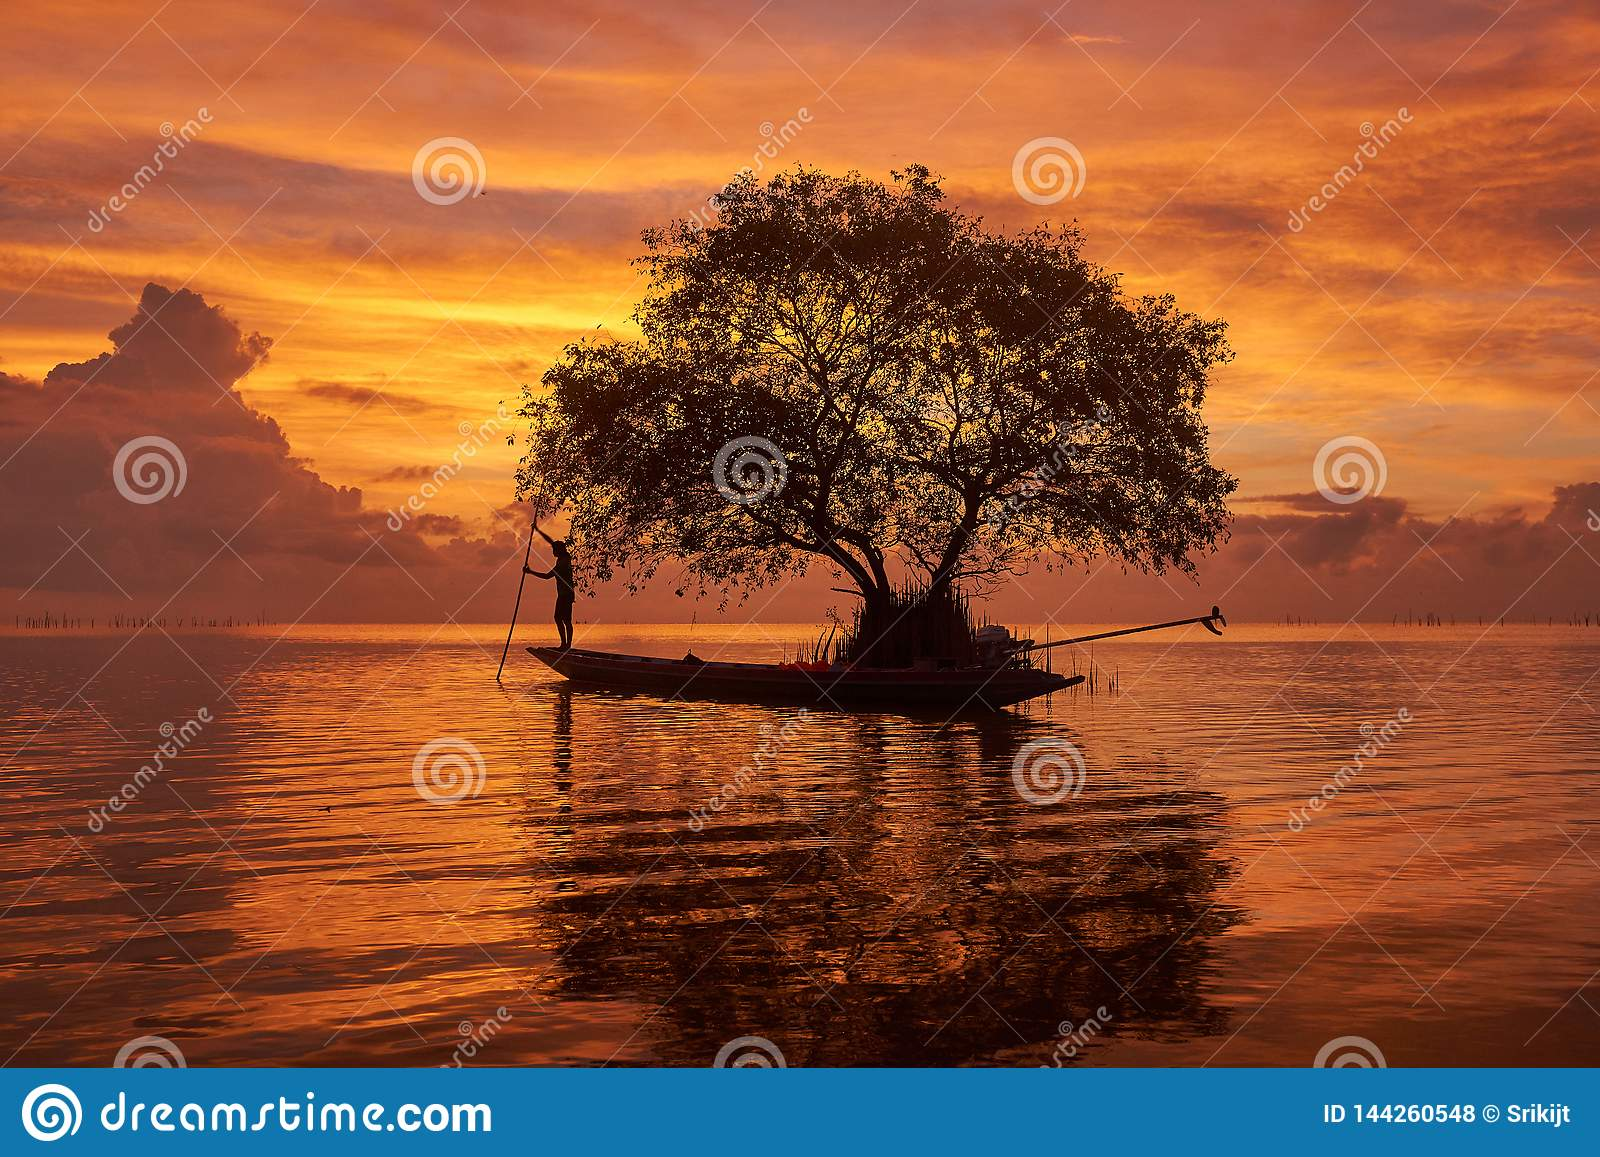 A fisherman on longtail boat and a cork tree agianst beautiful sky background